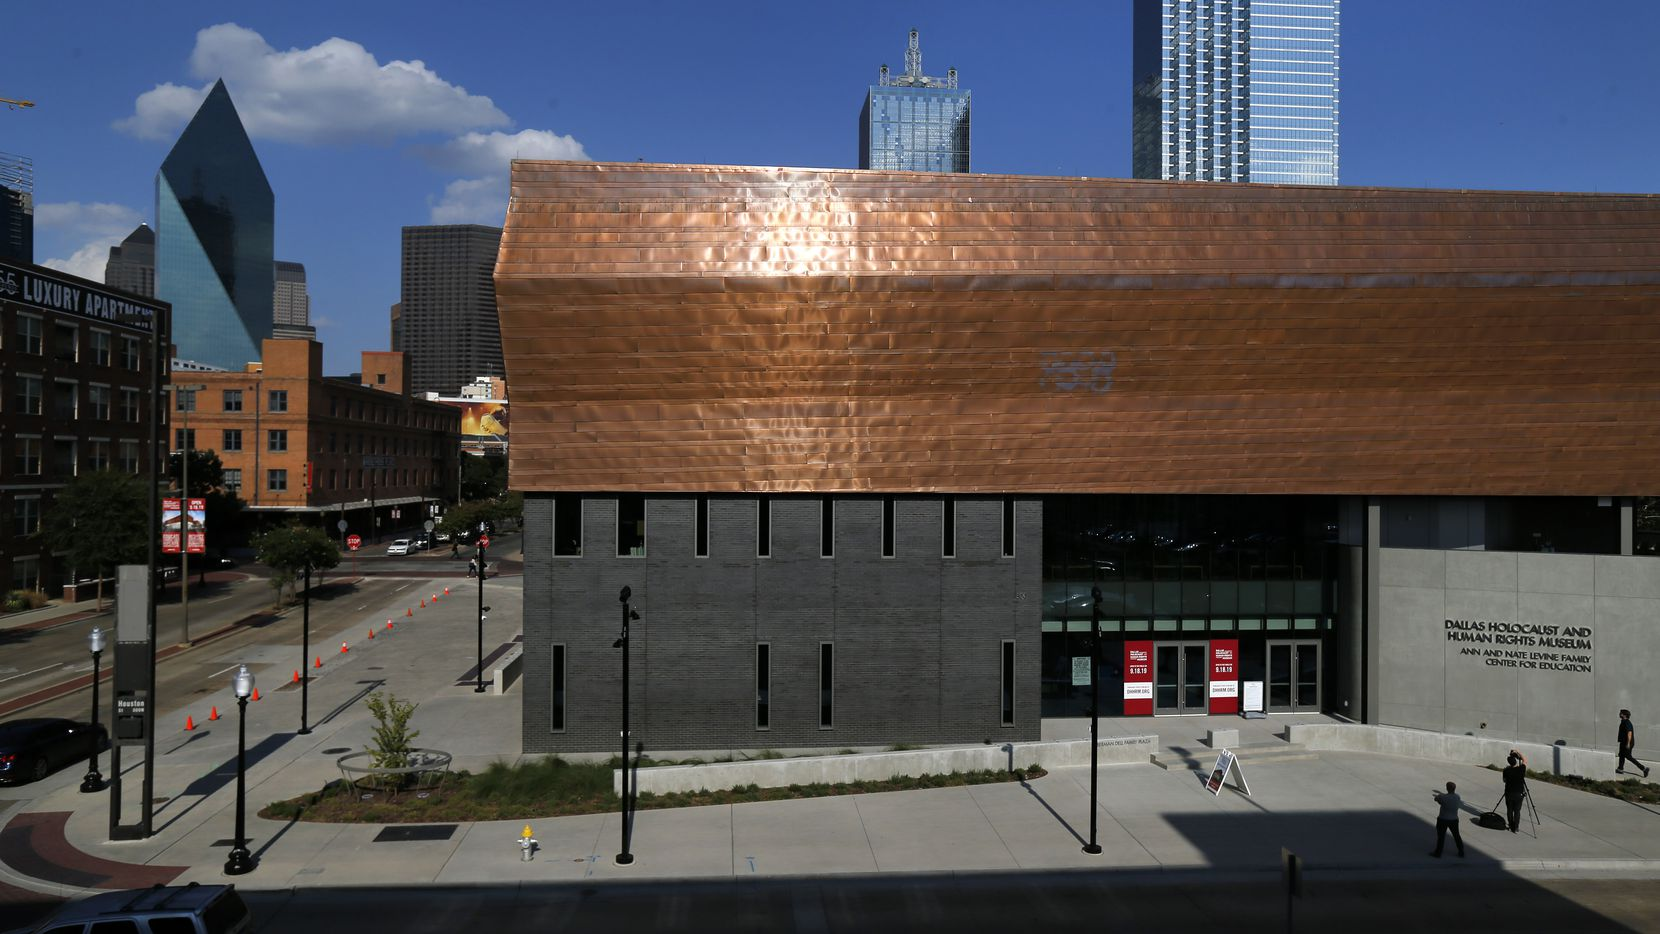 An exterior view of the Dallas Holocaust and Human Rights Museum in downtown Dallas, Tuesday, September 10, 2019. (Tom Fox/The Dallas Morning News)